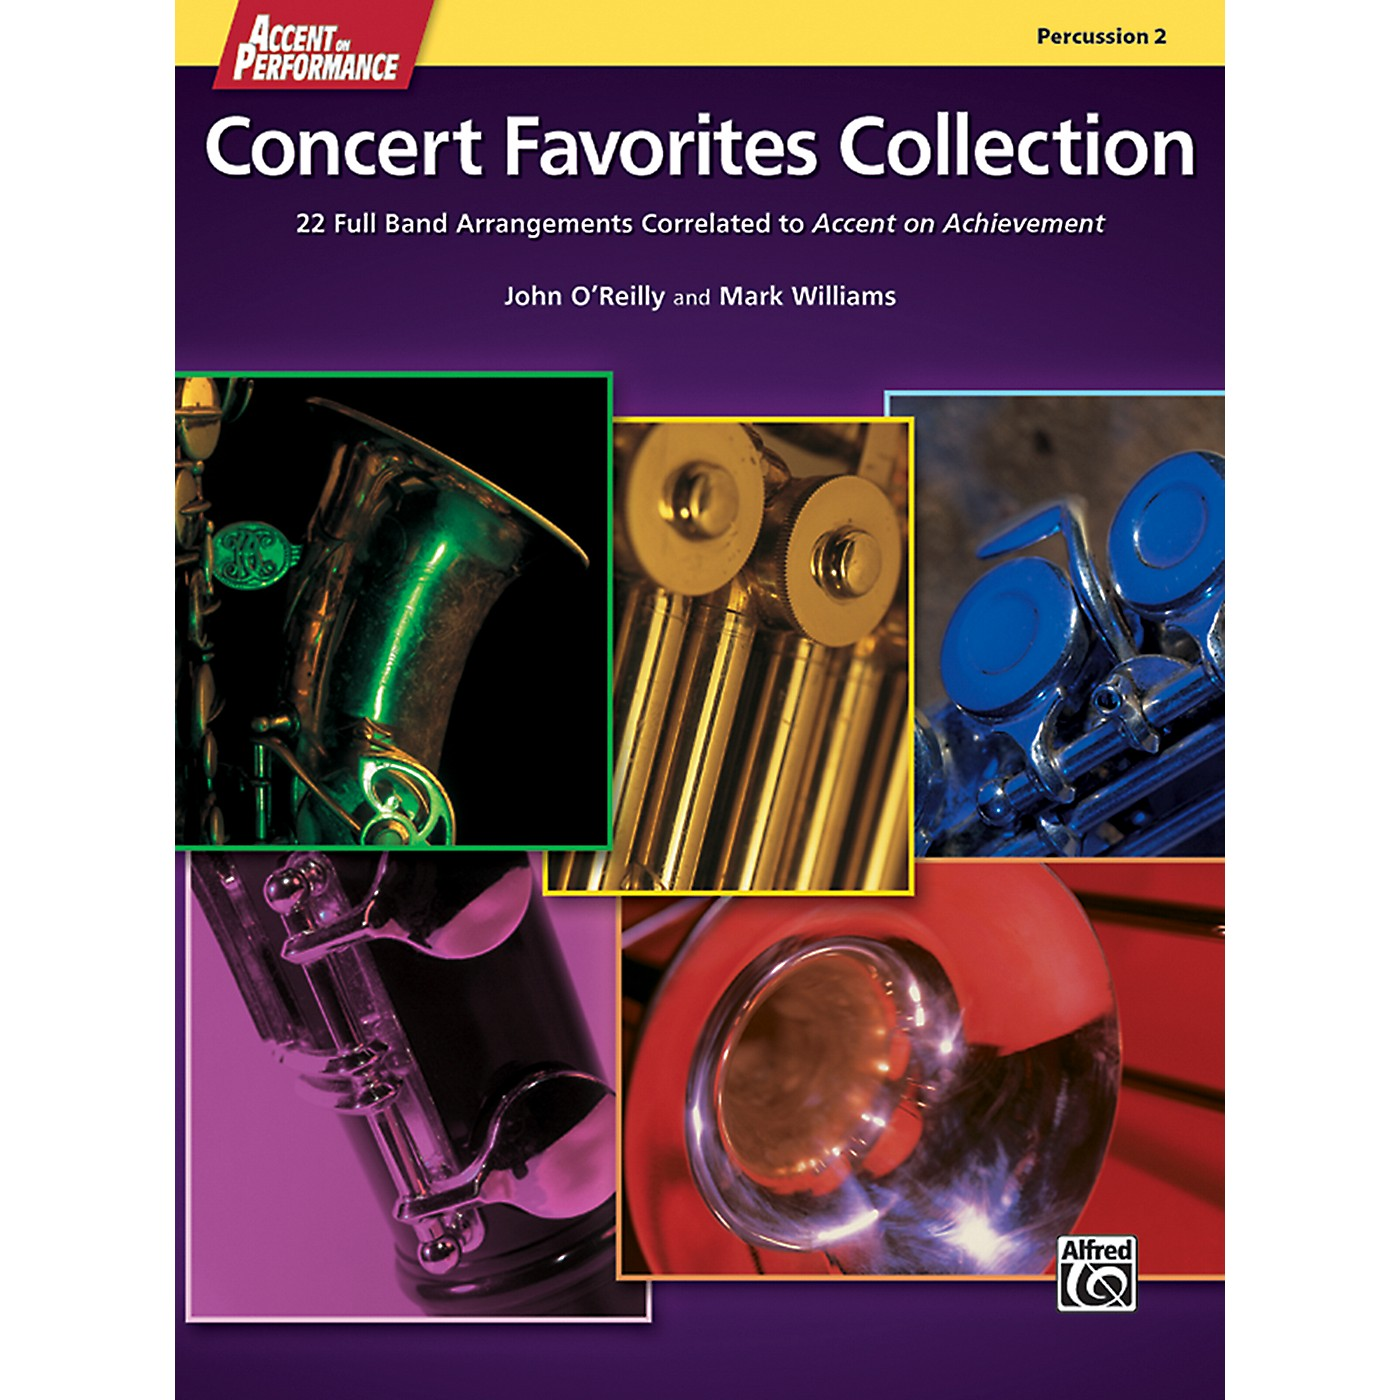 Alfred Accent on Performance Concert Favorites Collection Percussion 2 Book thumbnail